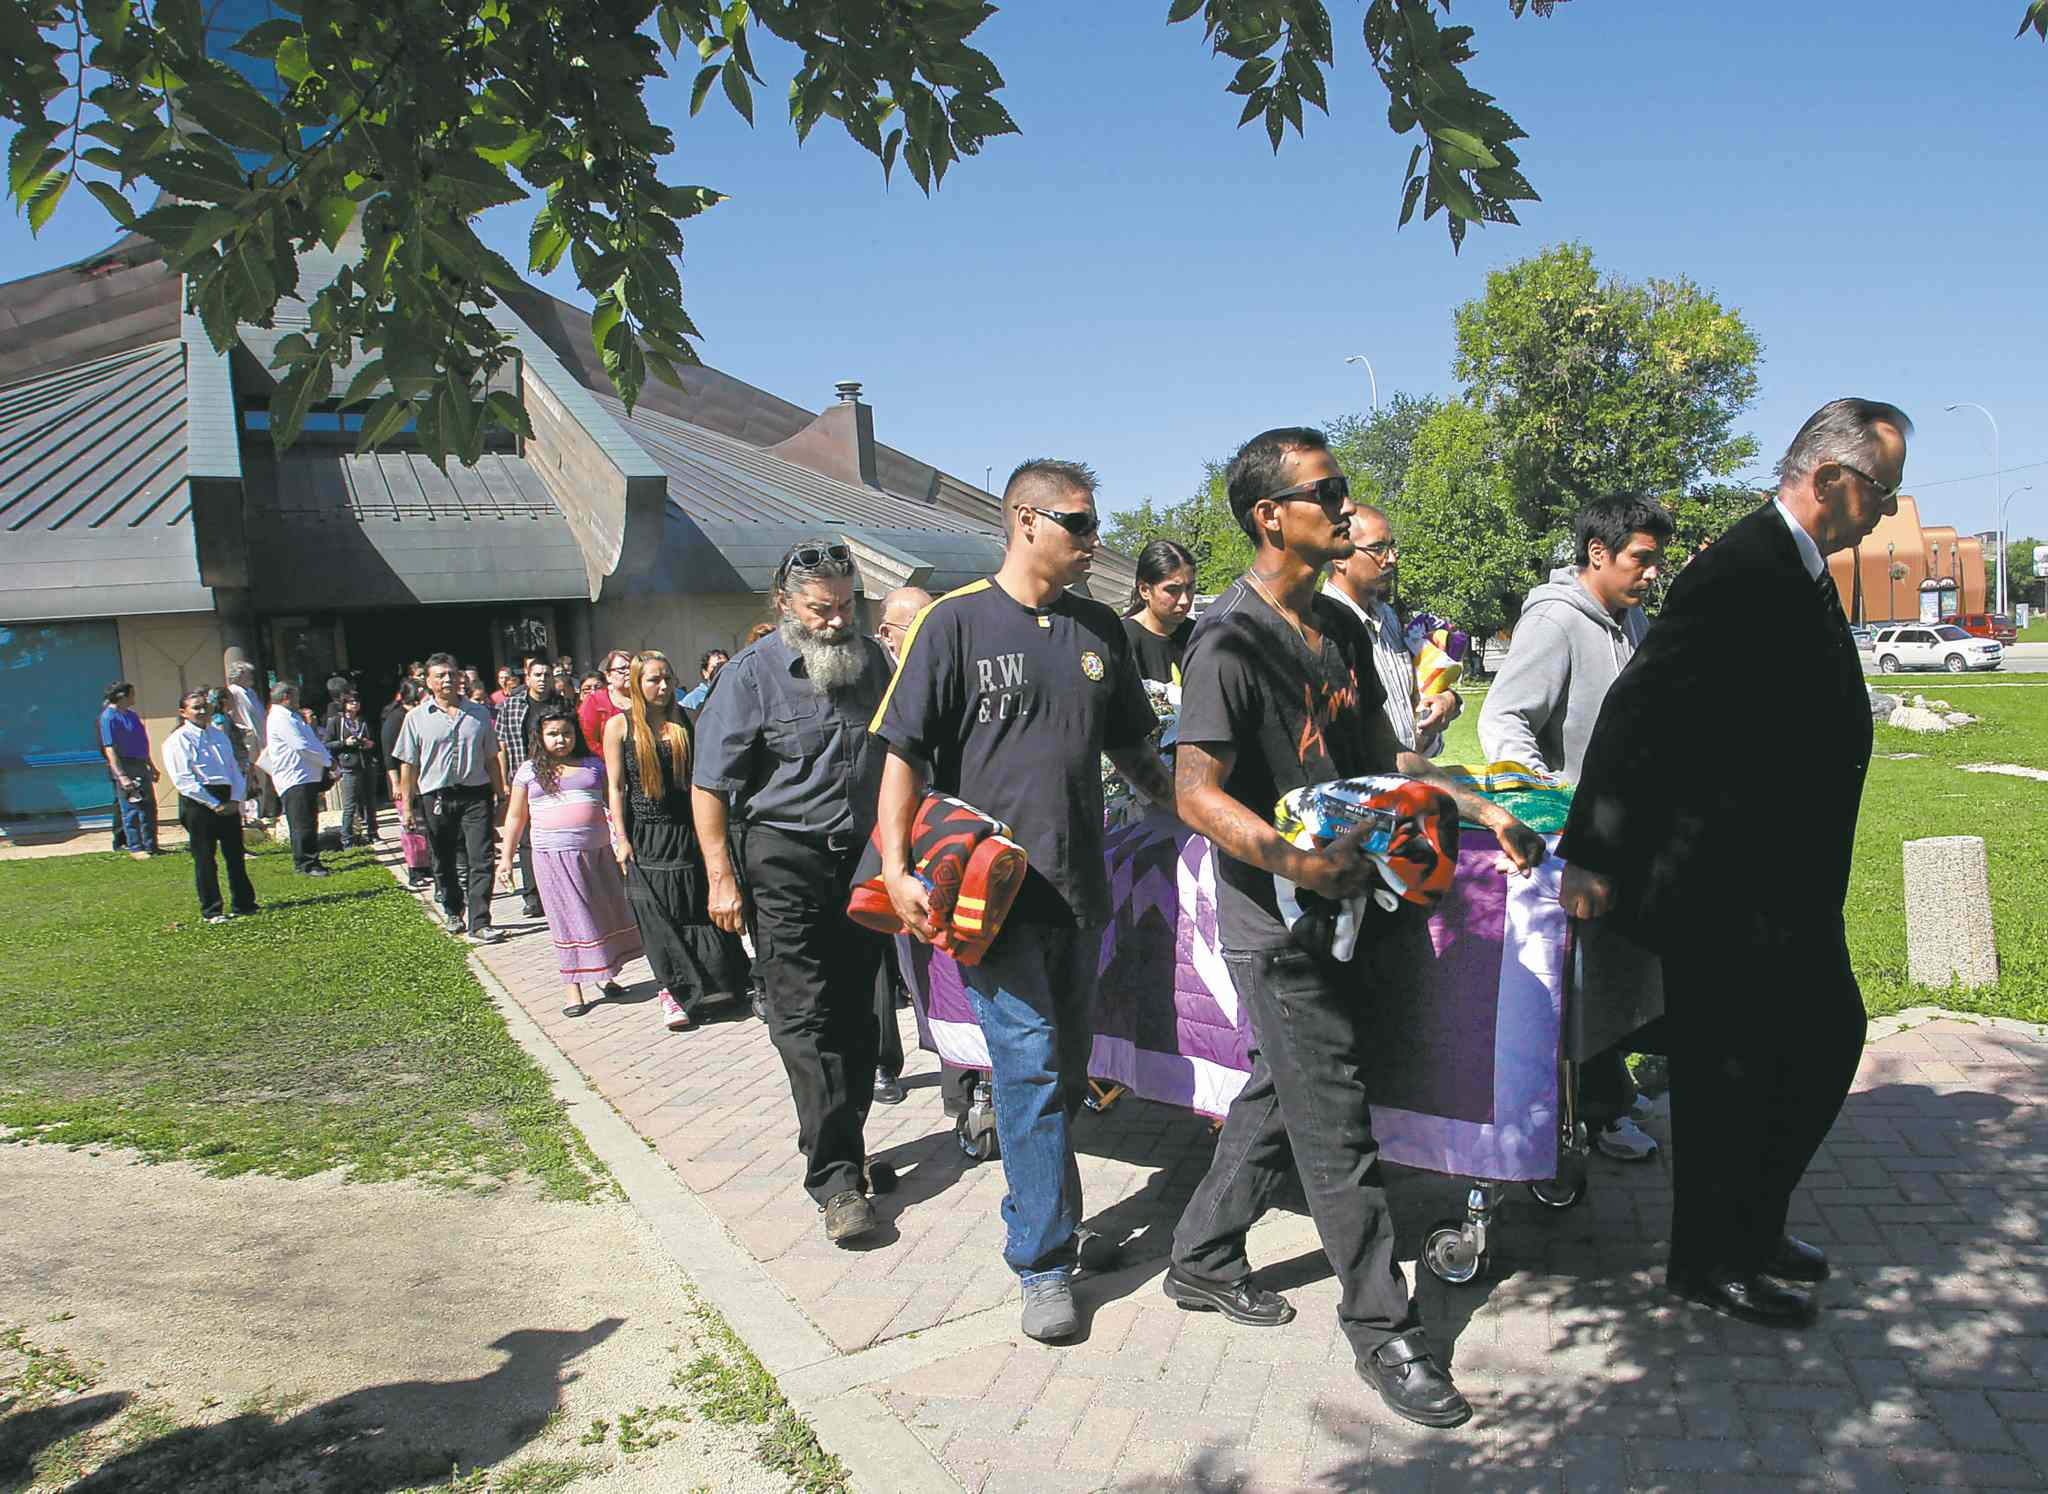 Mourners take part in the procession from Thunderbird House after the funeral for Faron Hall.